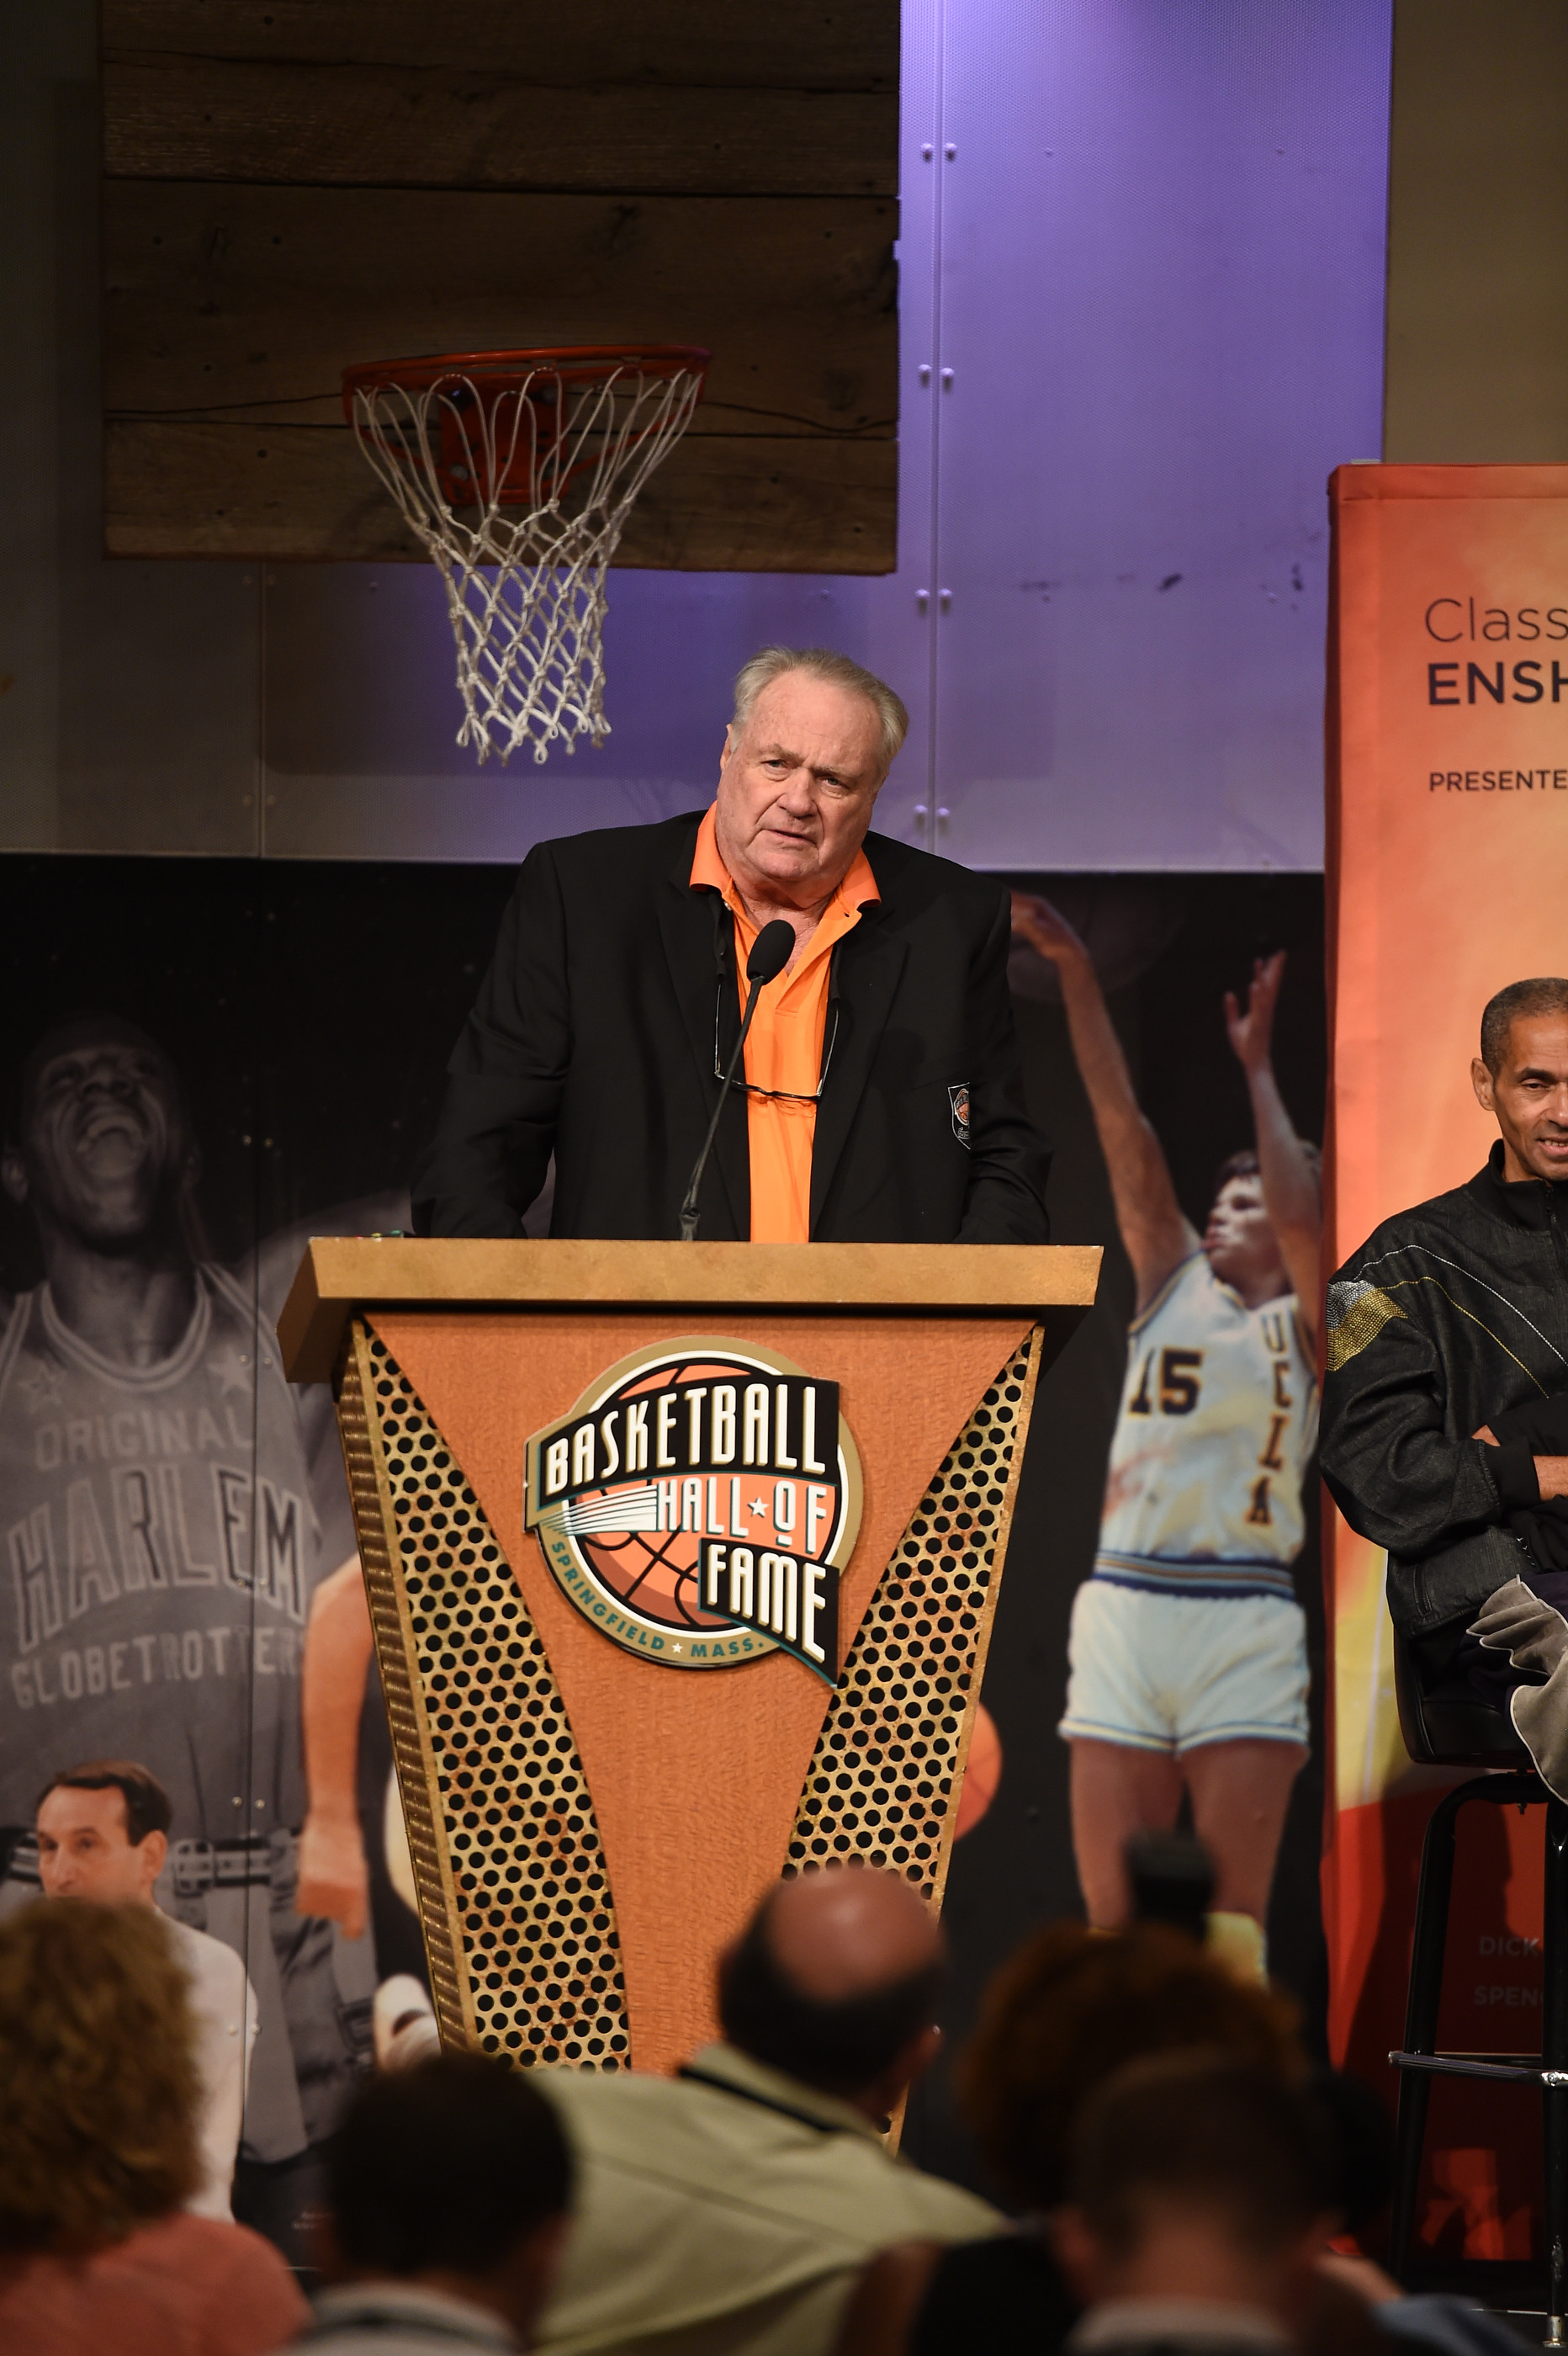 NBA Hall of Fame inducts Tommy Heinsohn as a coach and Jo Jo